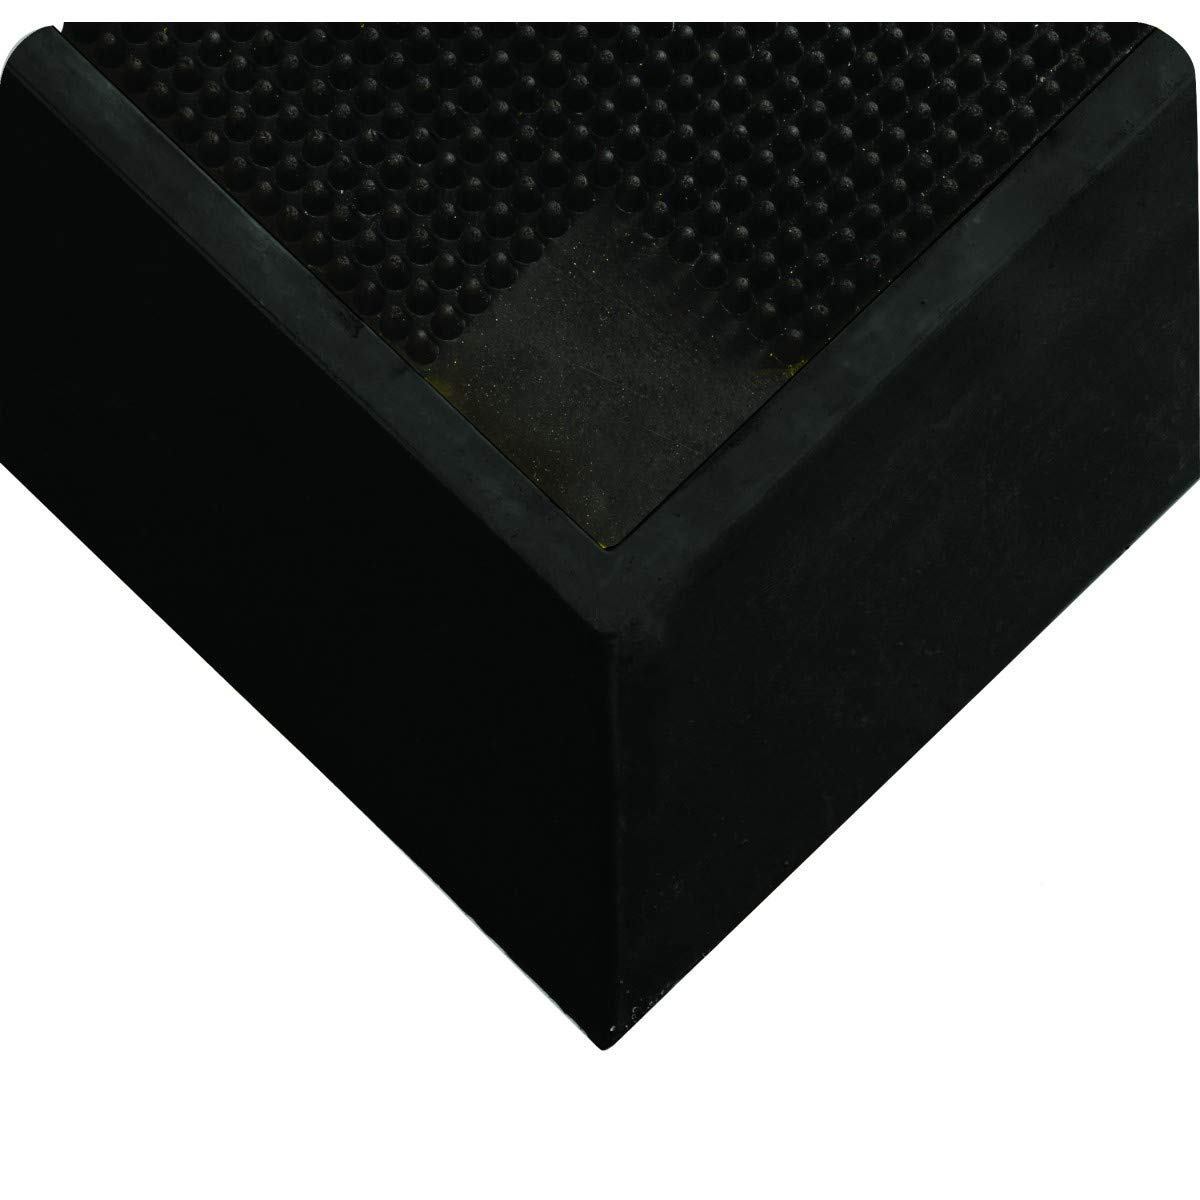 "Wearwell Natural Rubber 222 Anti-Fatigue Sanitizing Footbath Mat, for Food Processing Facilities, 2 1/2"" Edges, 2 1/2in x 30.75in x 37in, Black, 31"" x 37"" x 2.5"""